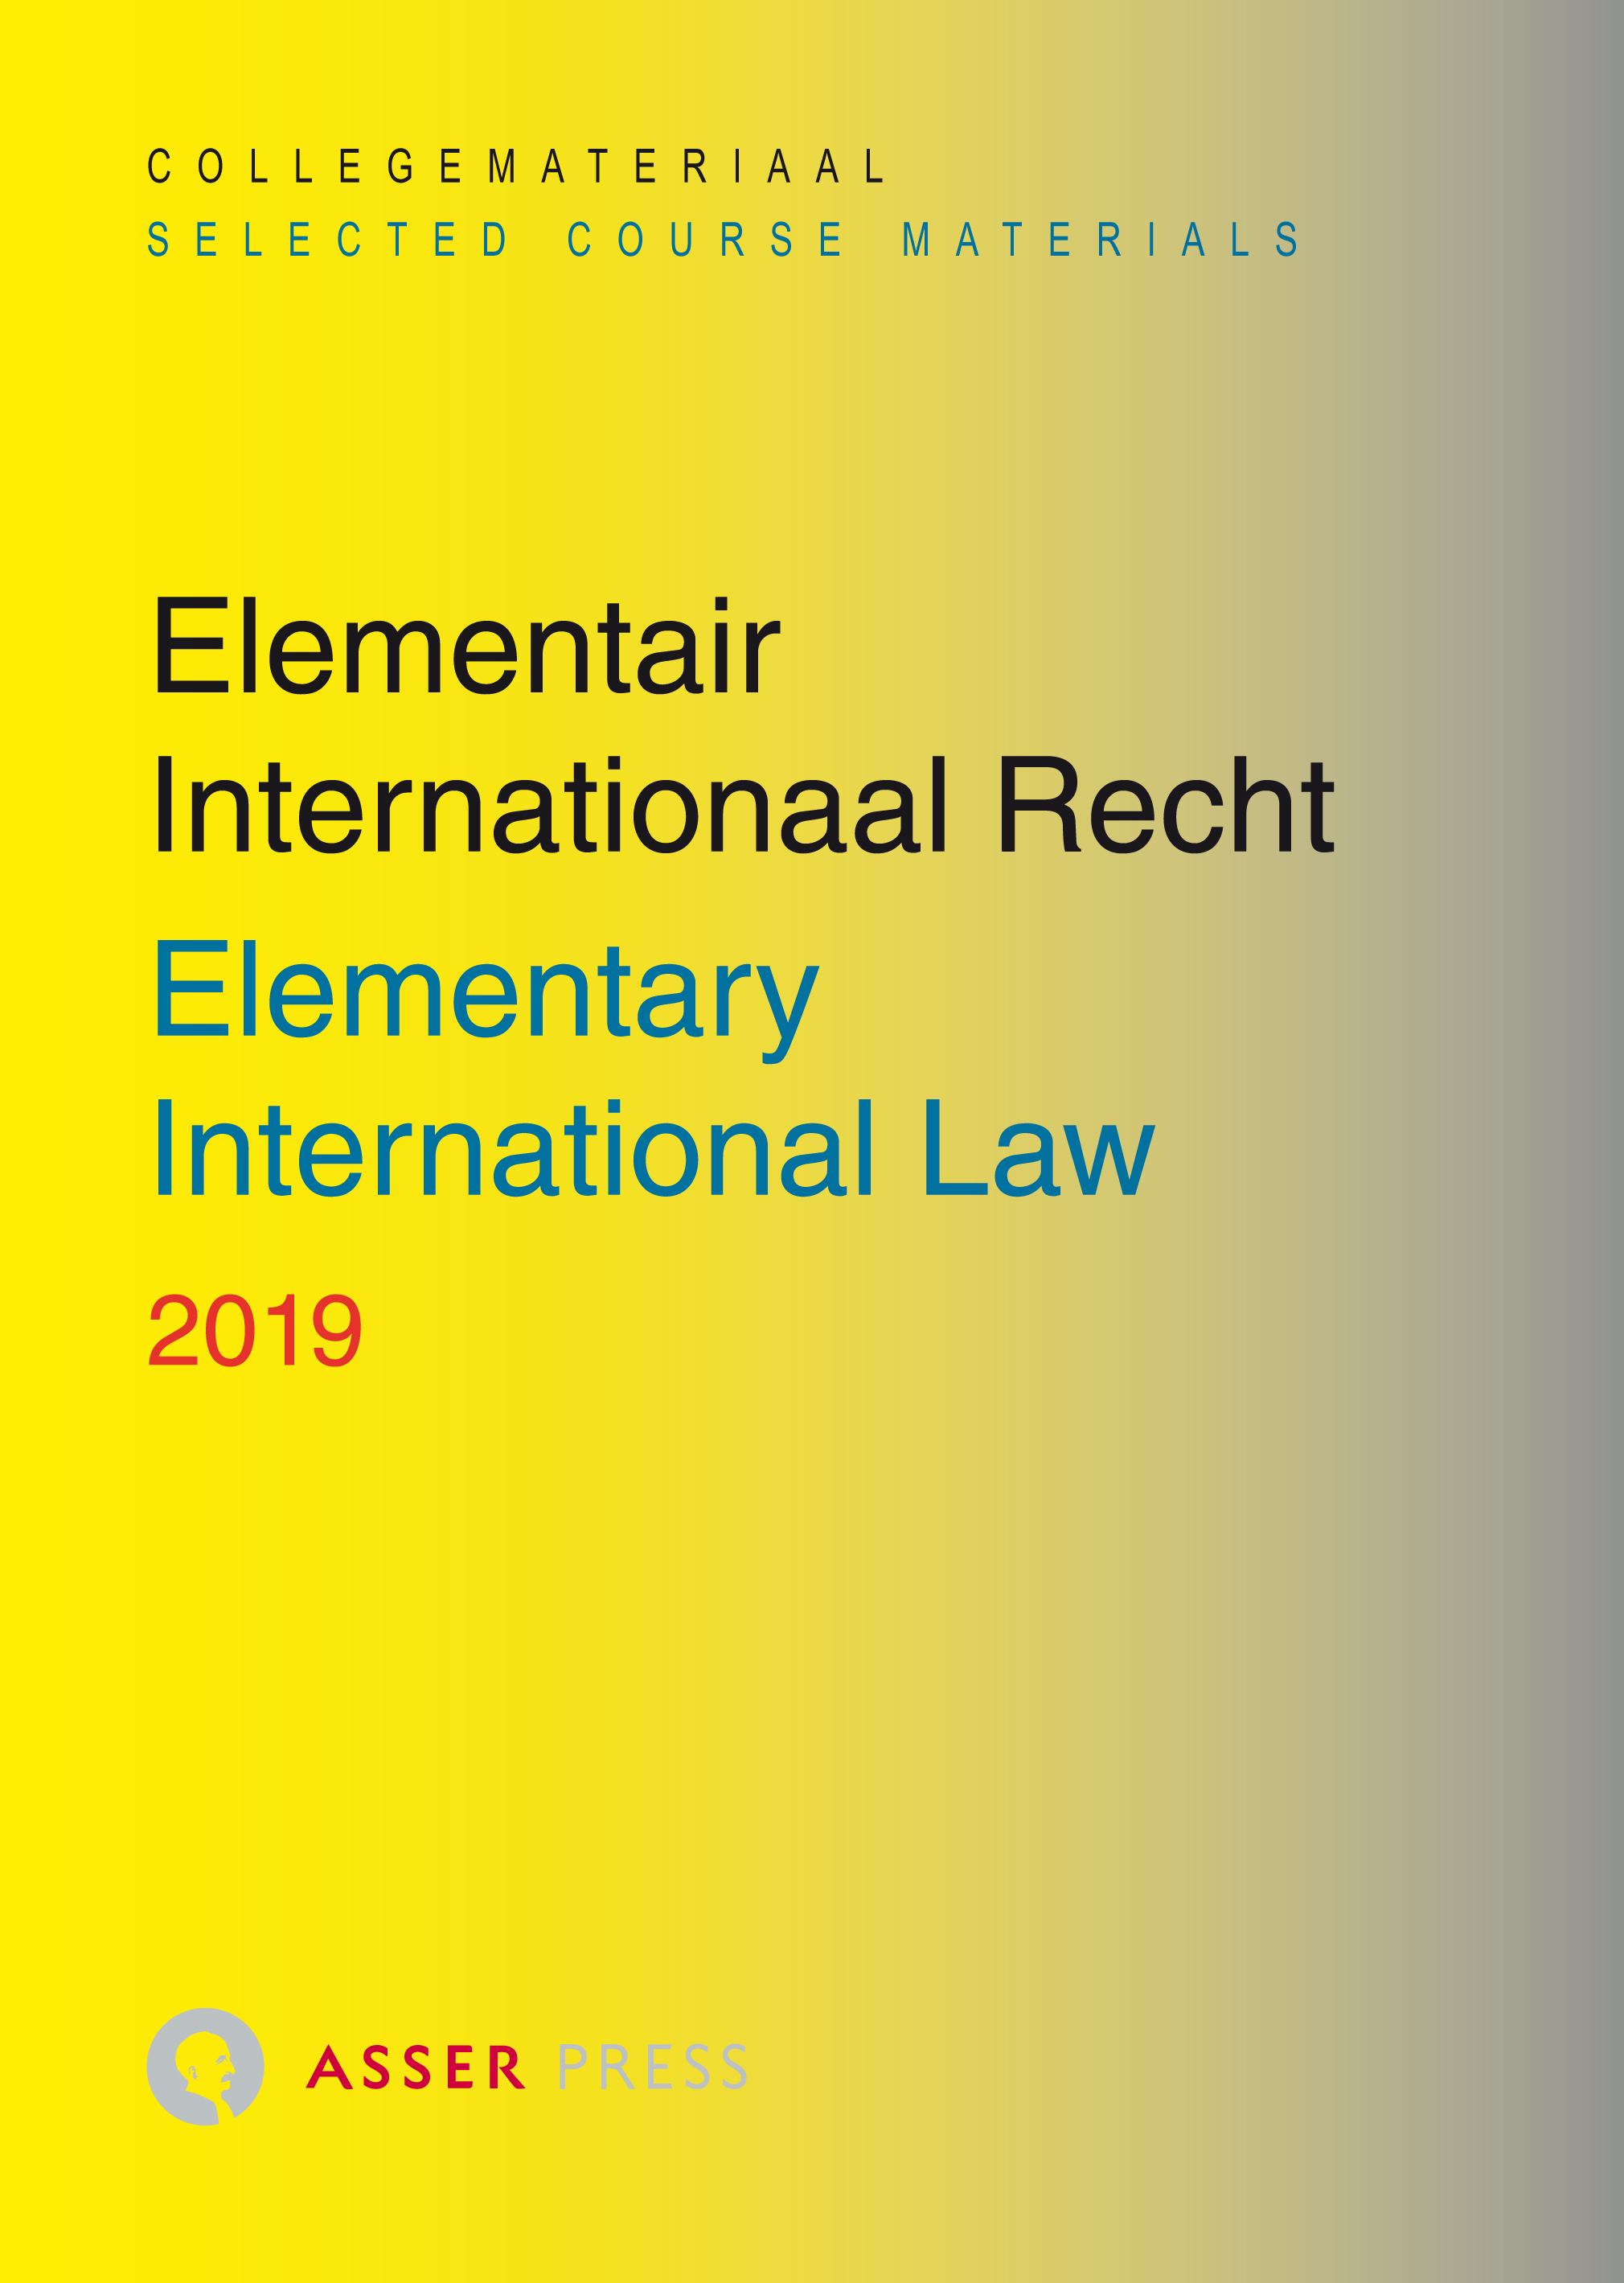 Elementair Internationaal Recht 2019/Elementary International Law 2019